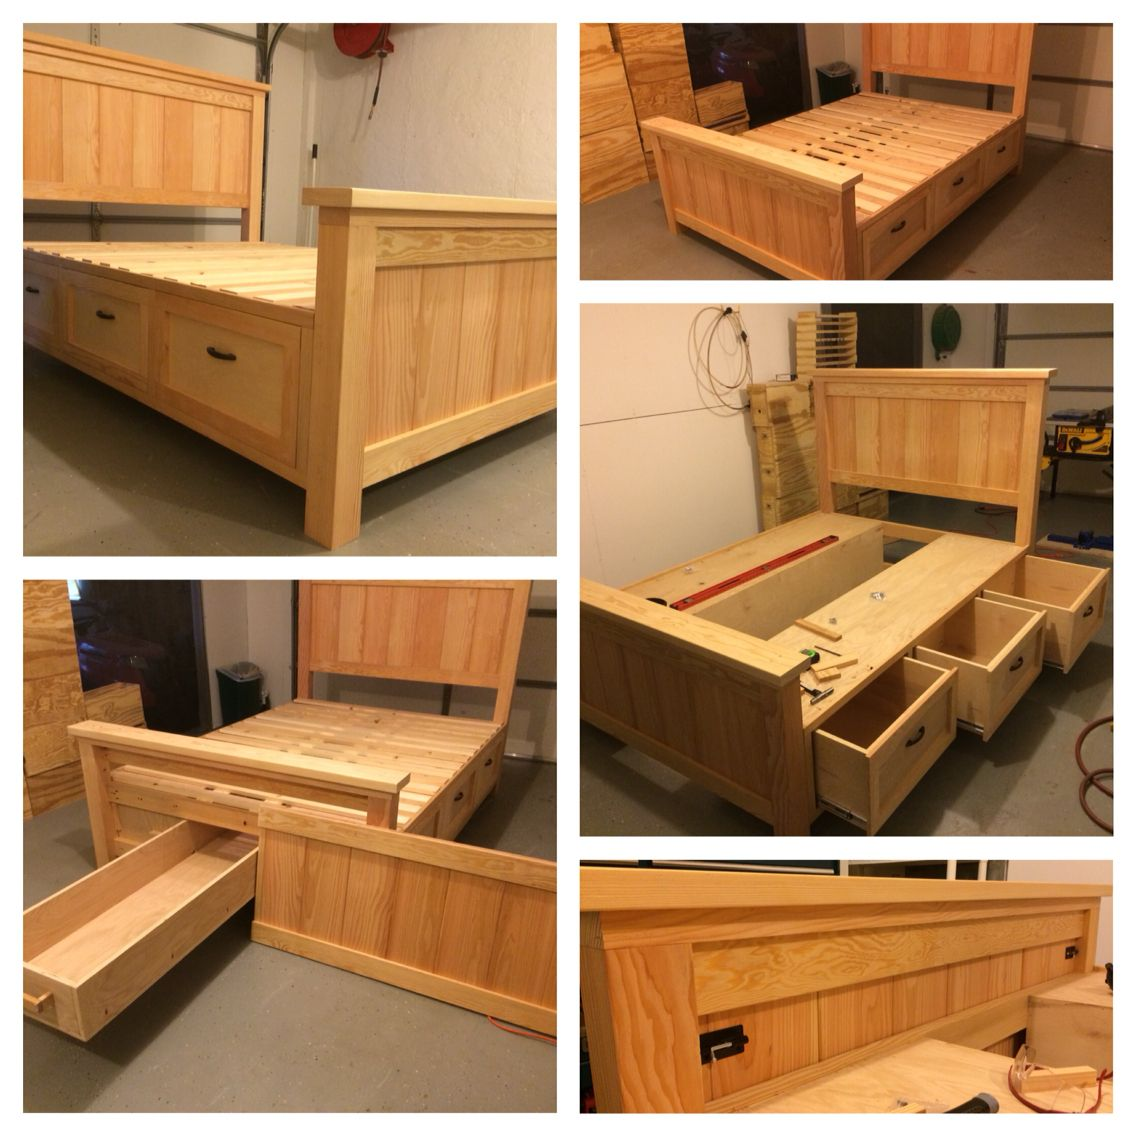 It is a Queen Farmhouse Storage bed with a hidden storage drawer. & I just finished this build. It is a Queen Farmhouse Storage bed with ...